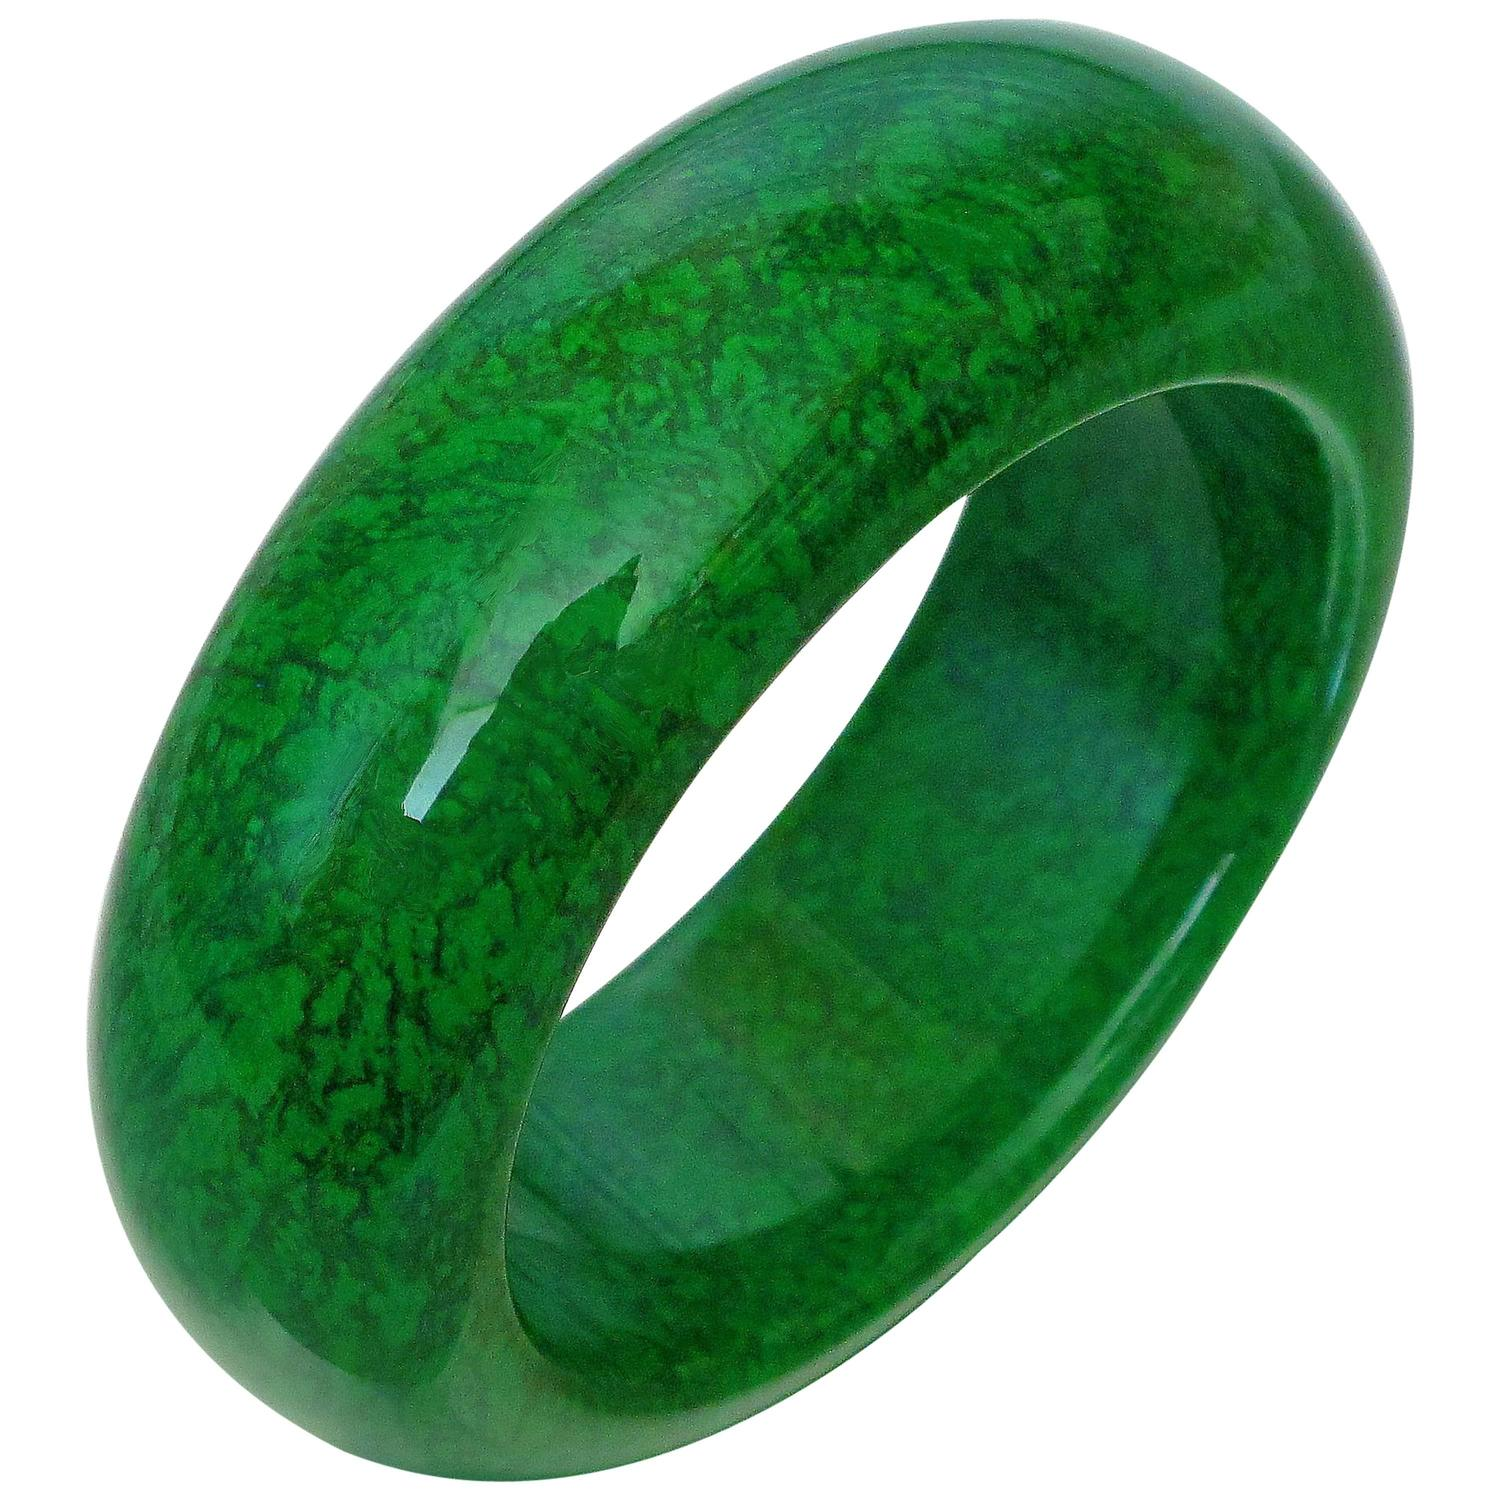 Natural Maw Sit Sit Jade Bangle Bracelet For Sale At 1stdibs